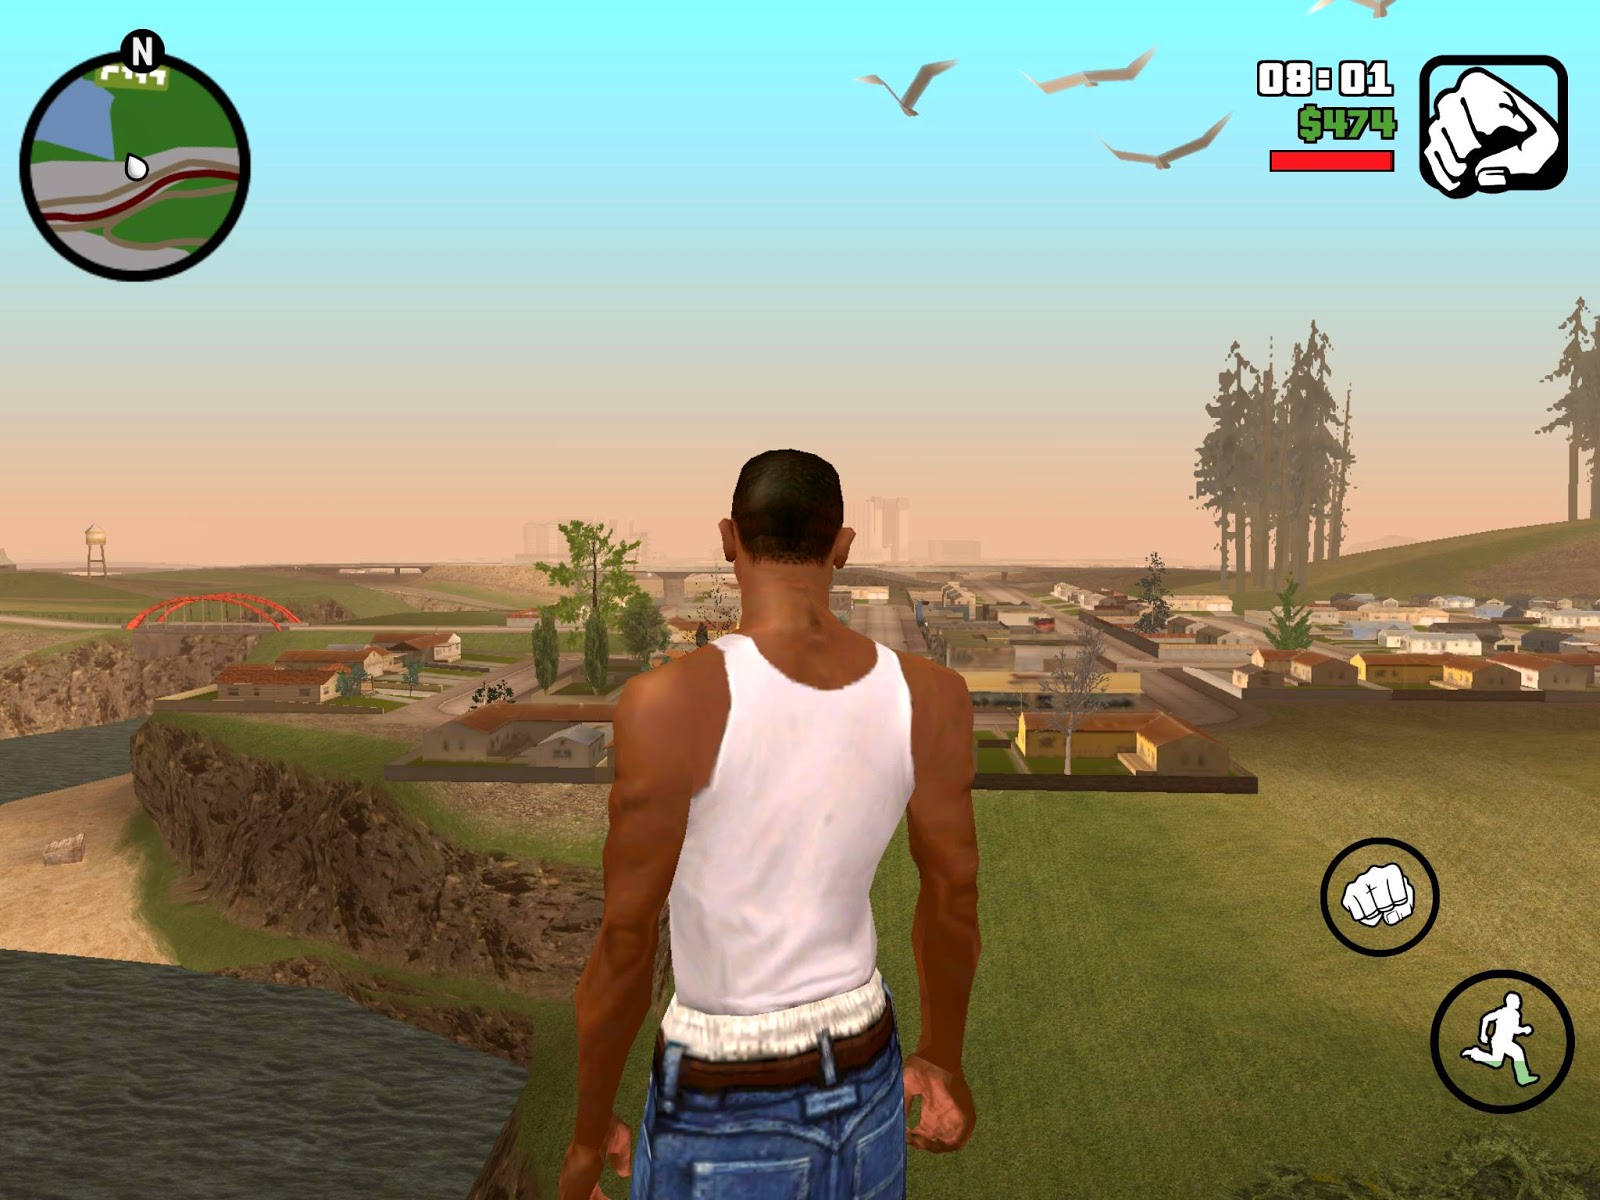 gta1 Grand Theft Auto San Andreas Apk v1.0.8 +Cheat +Data Apps